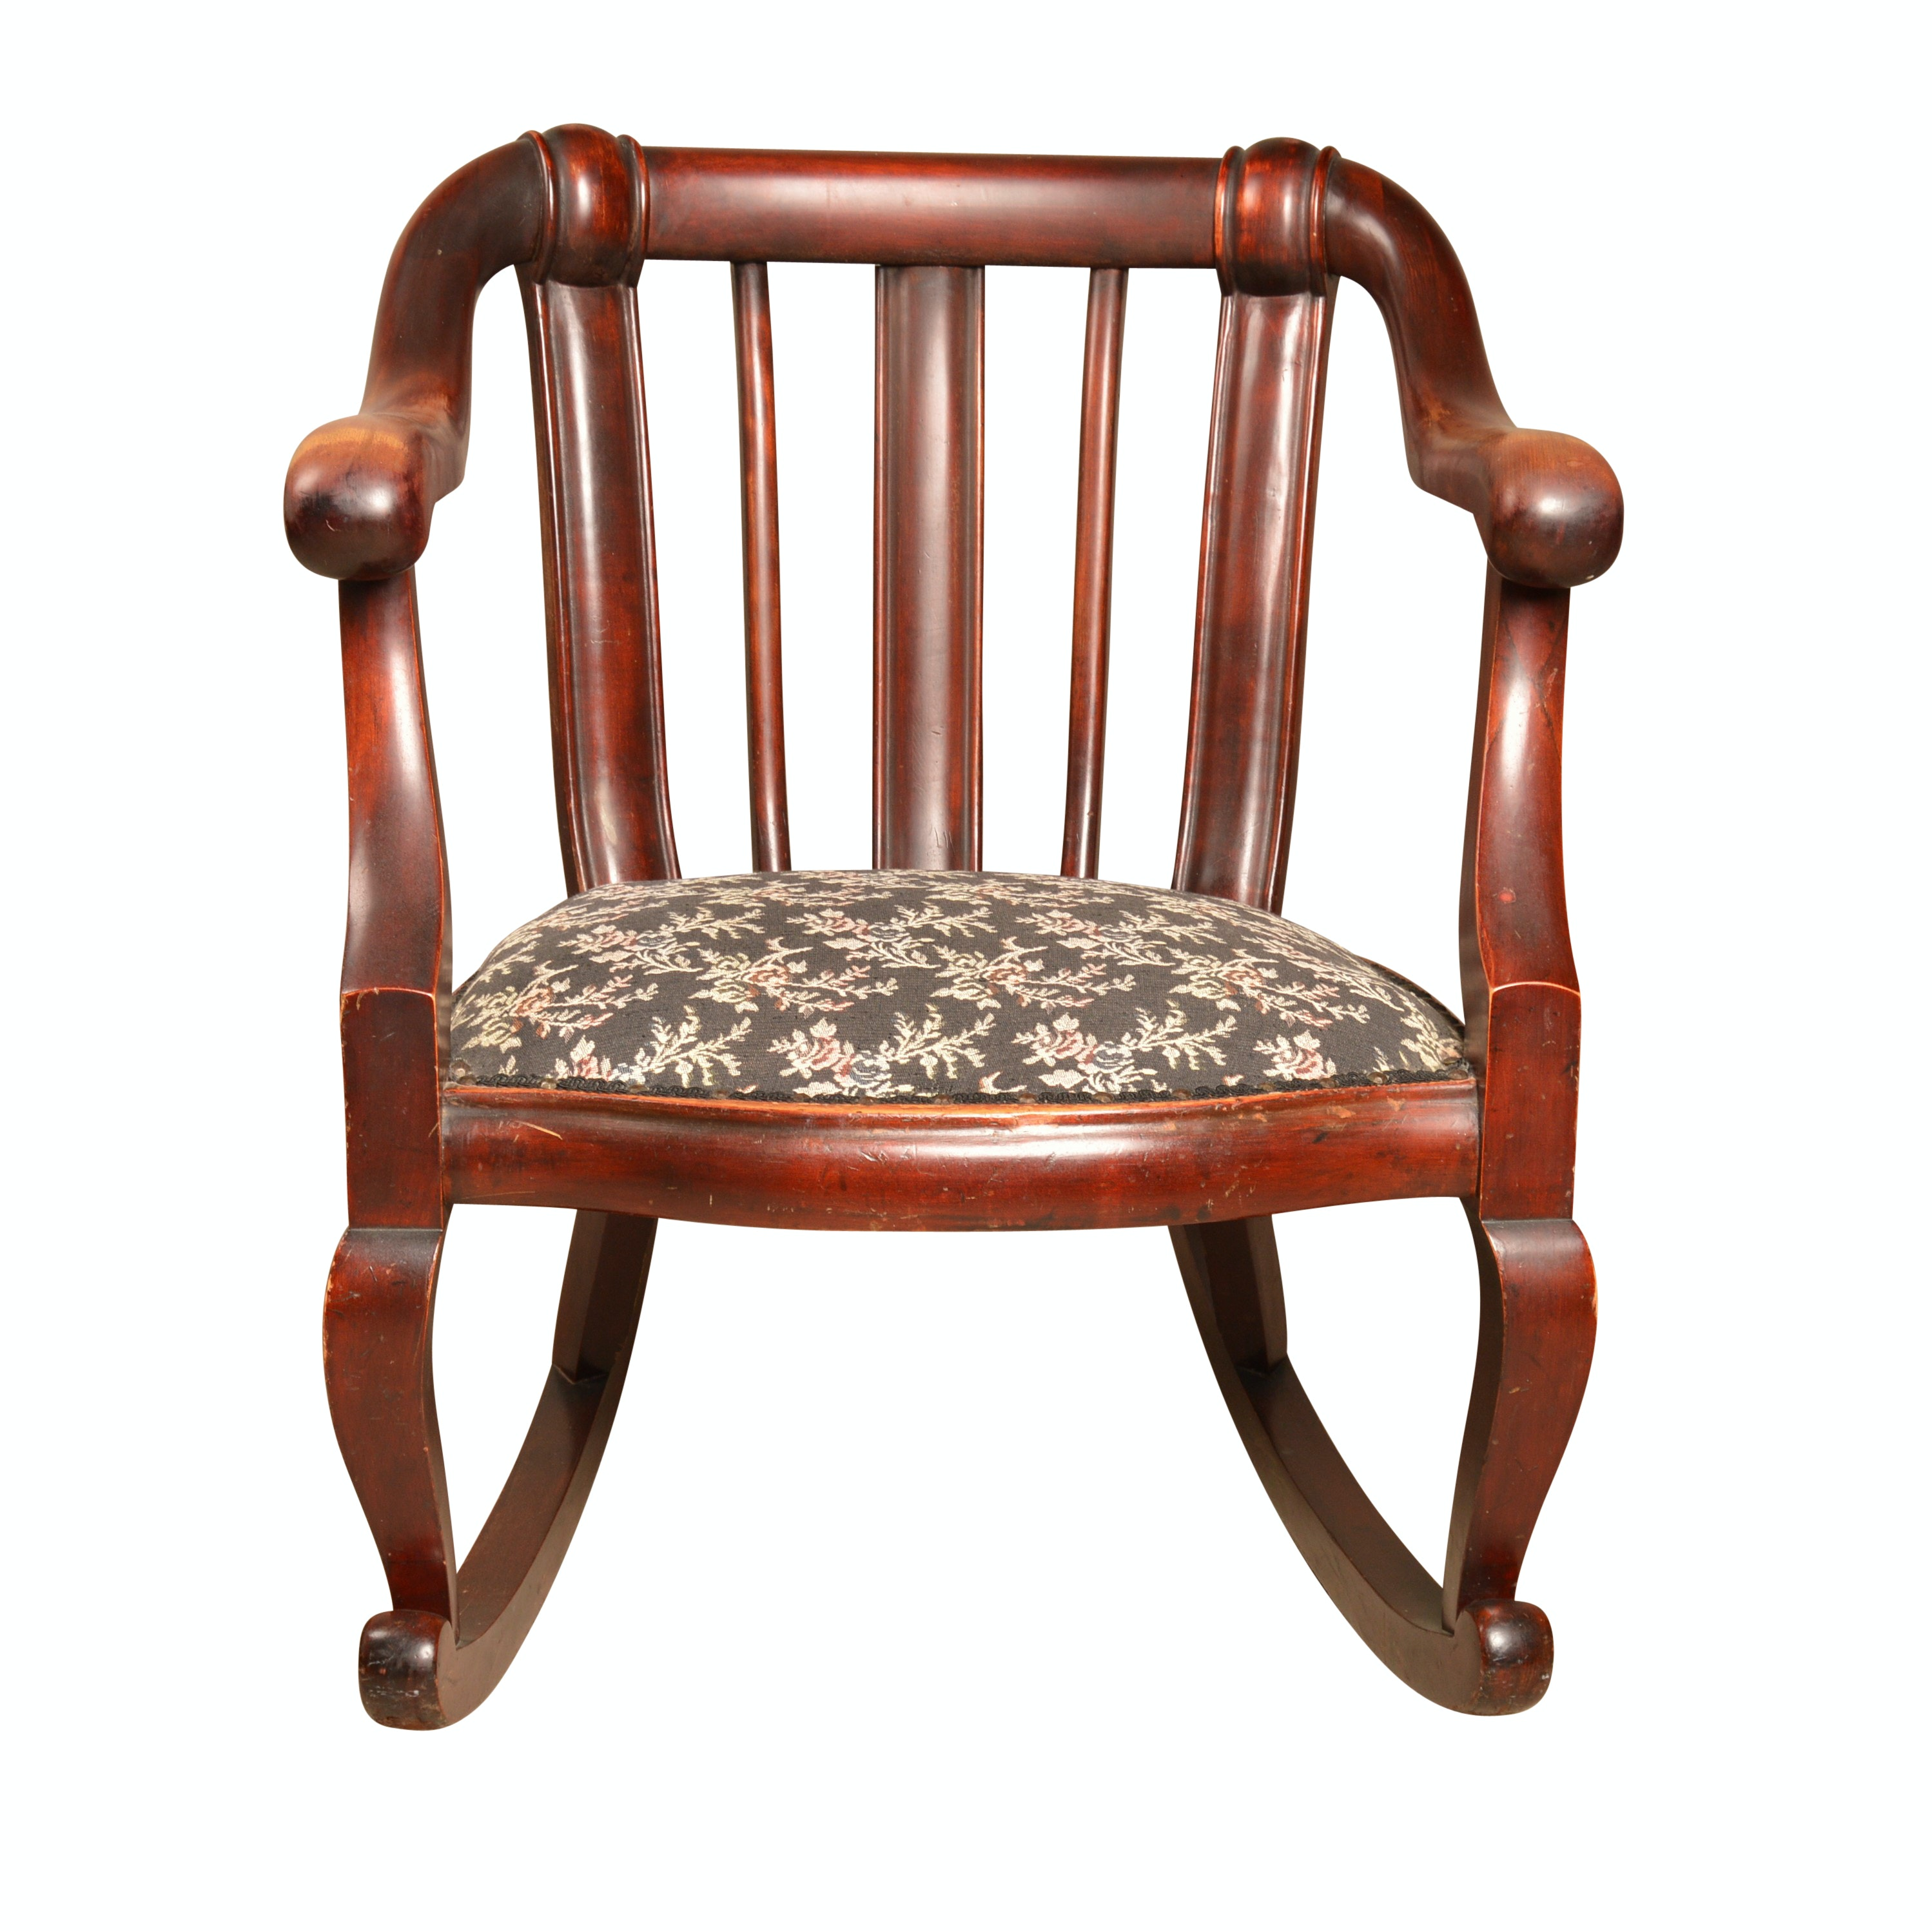 Empire Revival Style Wood Rocking Chair